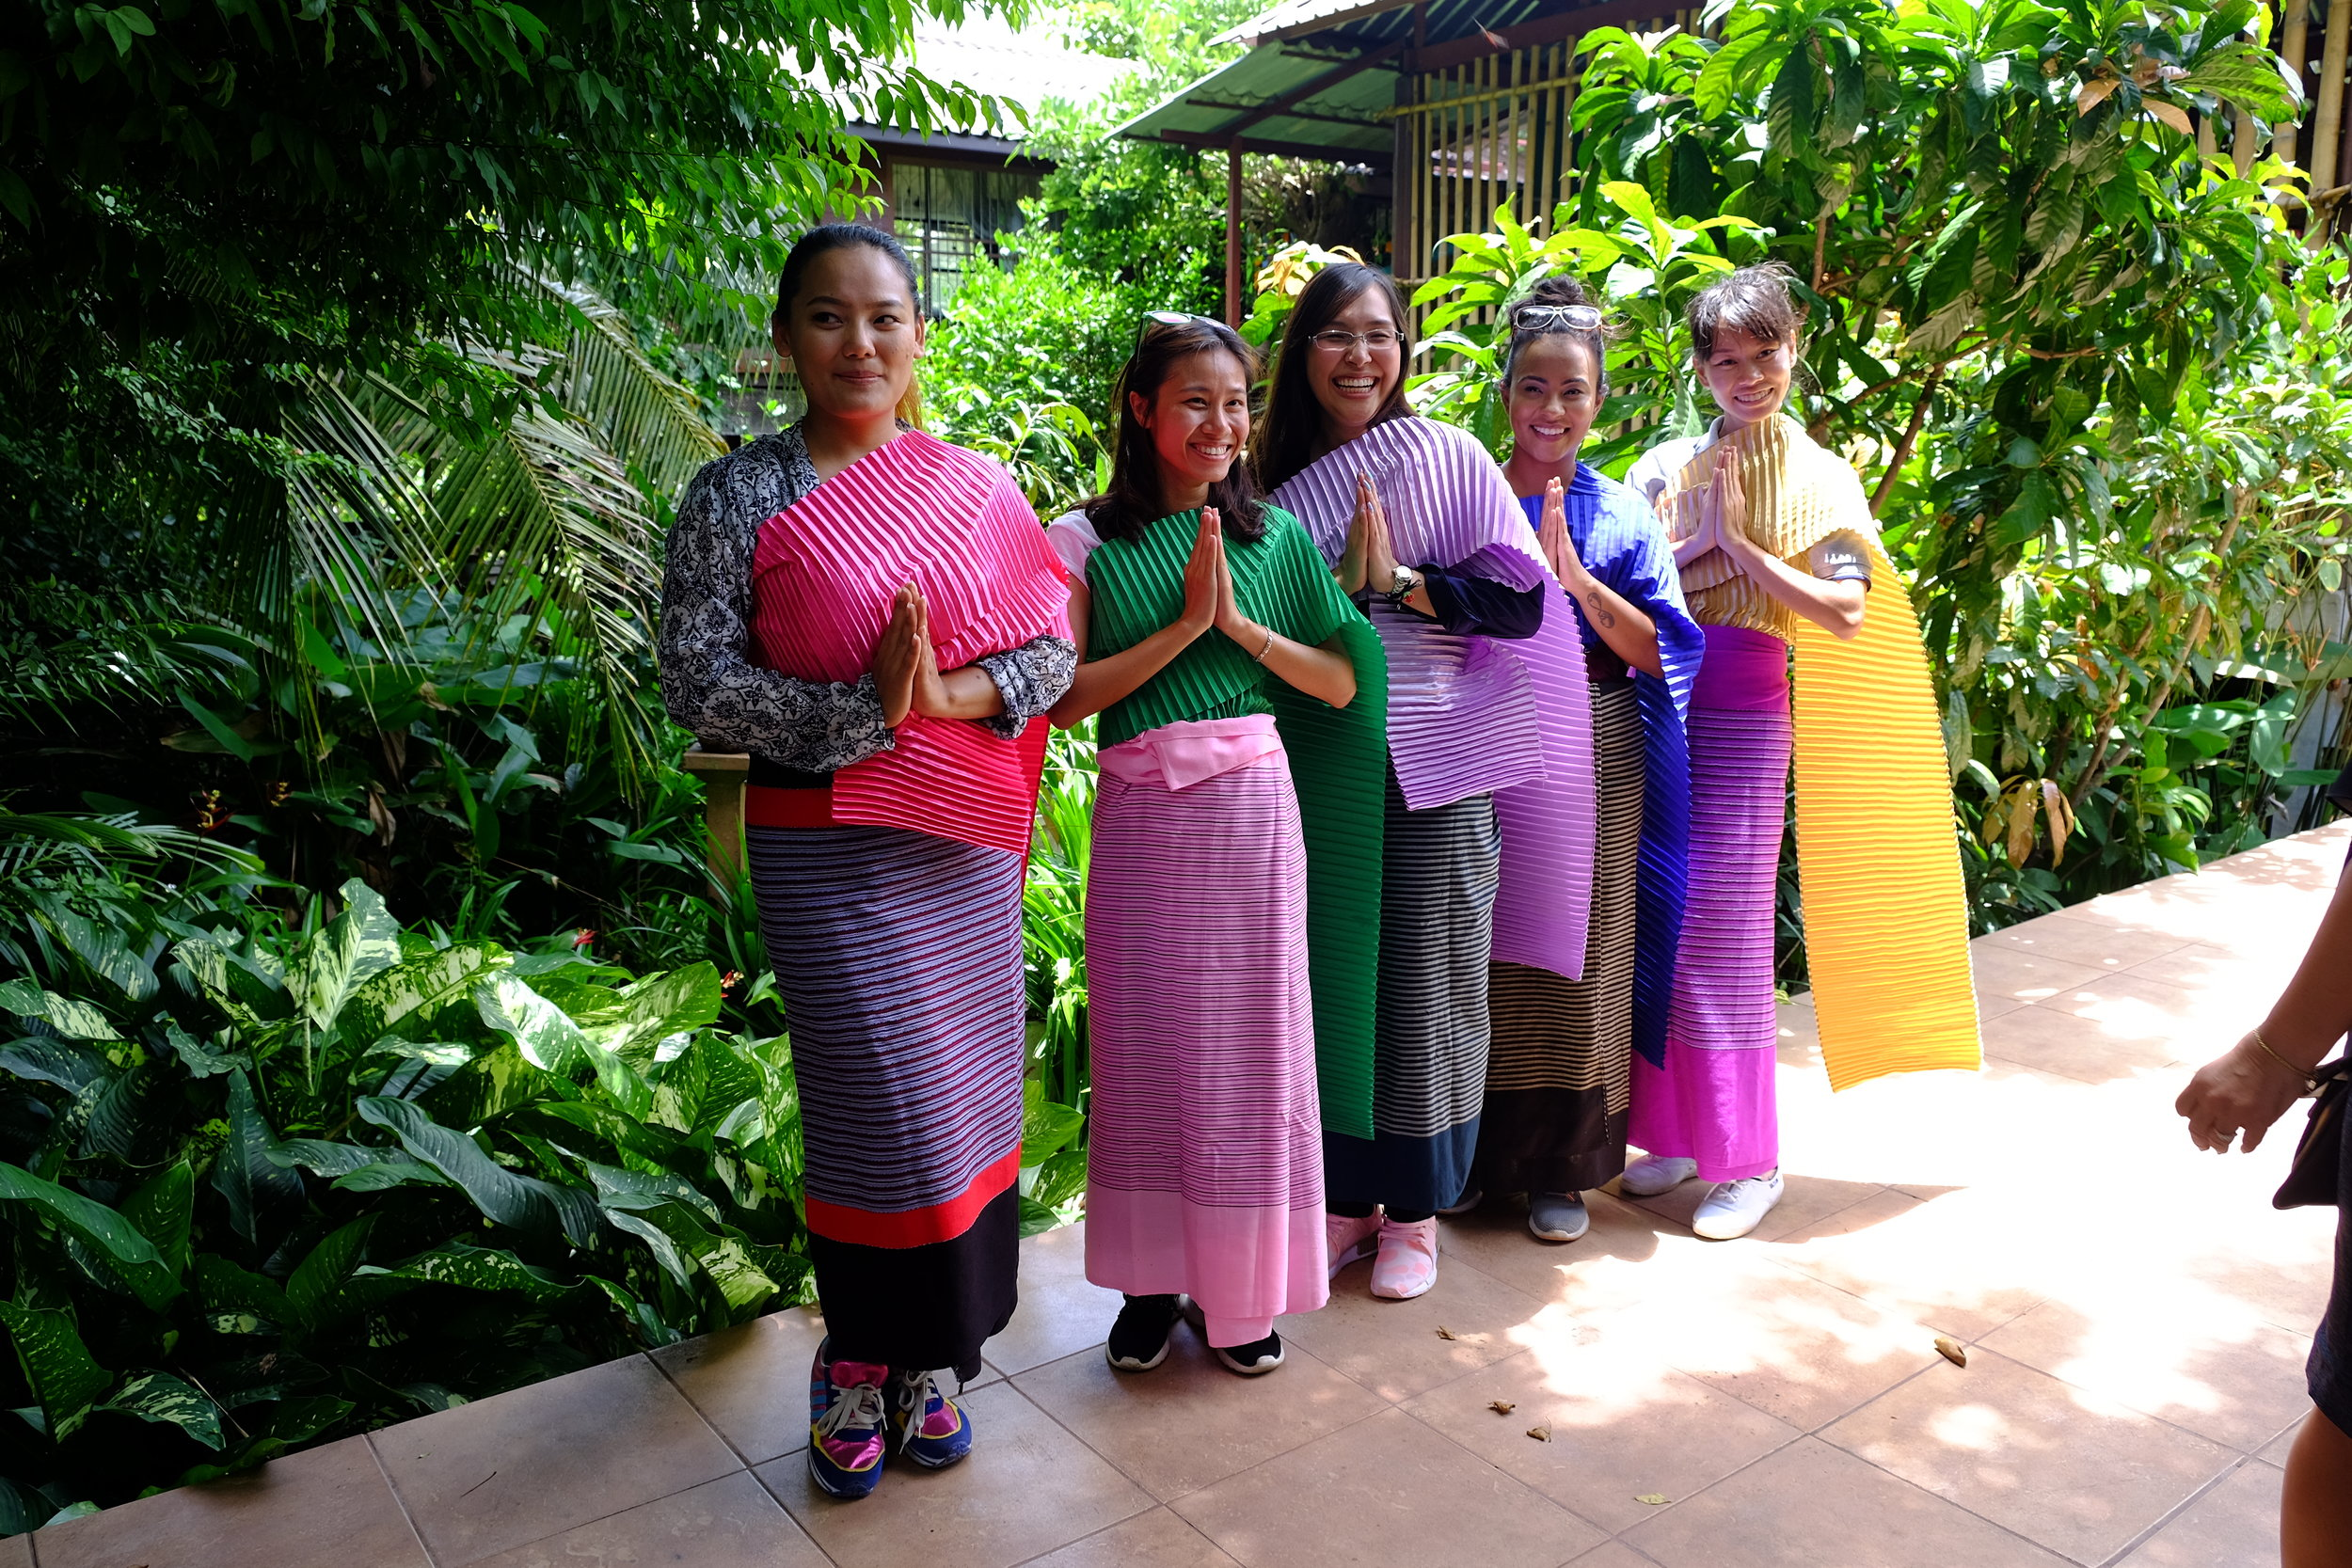 MAIDS Students enjoy wearing Thai traditional Costume